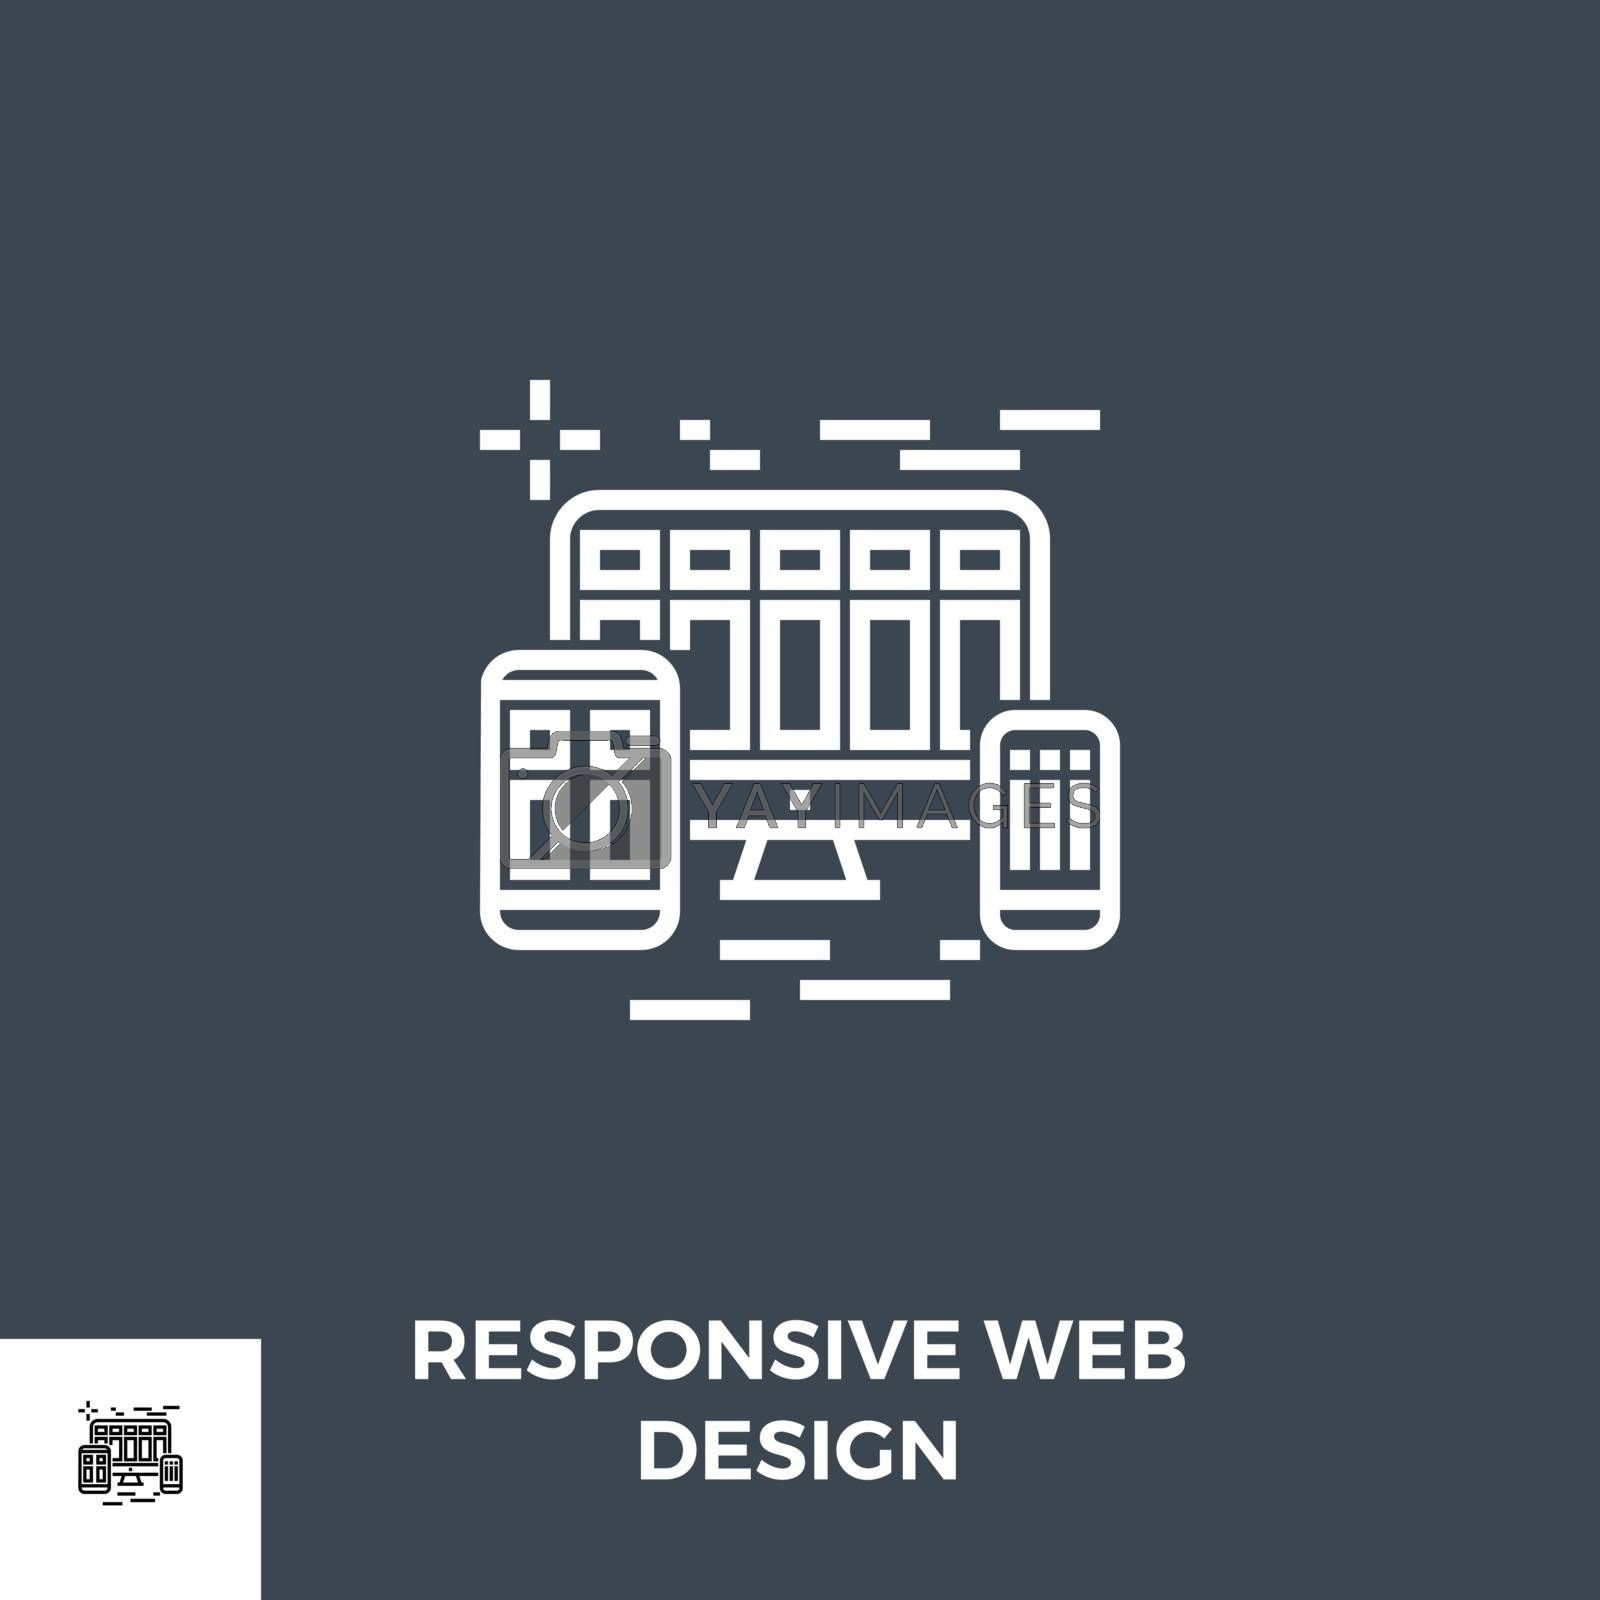 Responsive Web Design Related Vector Thin Line Icon. Isolated on Black Background. Editable Stroke. Vector Illustration.